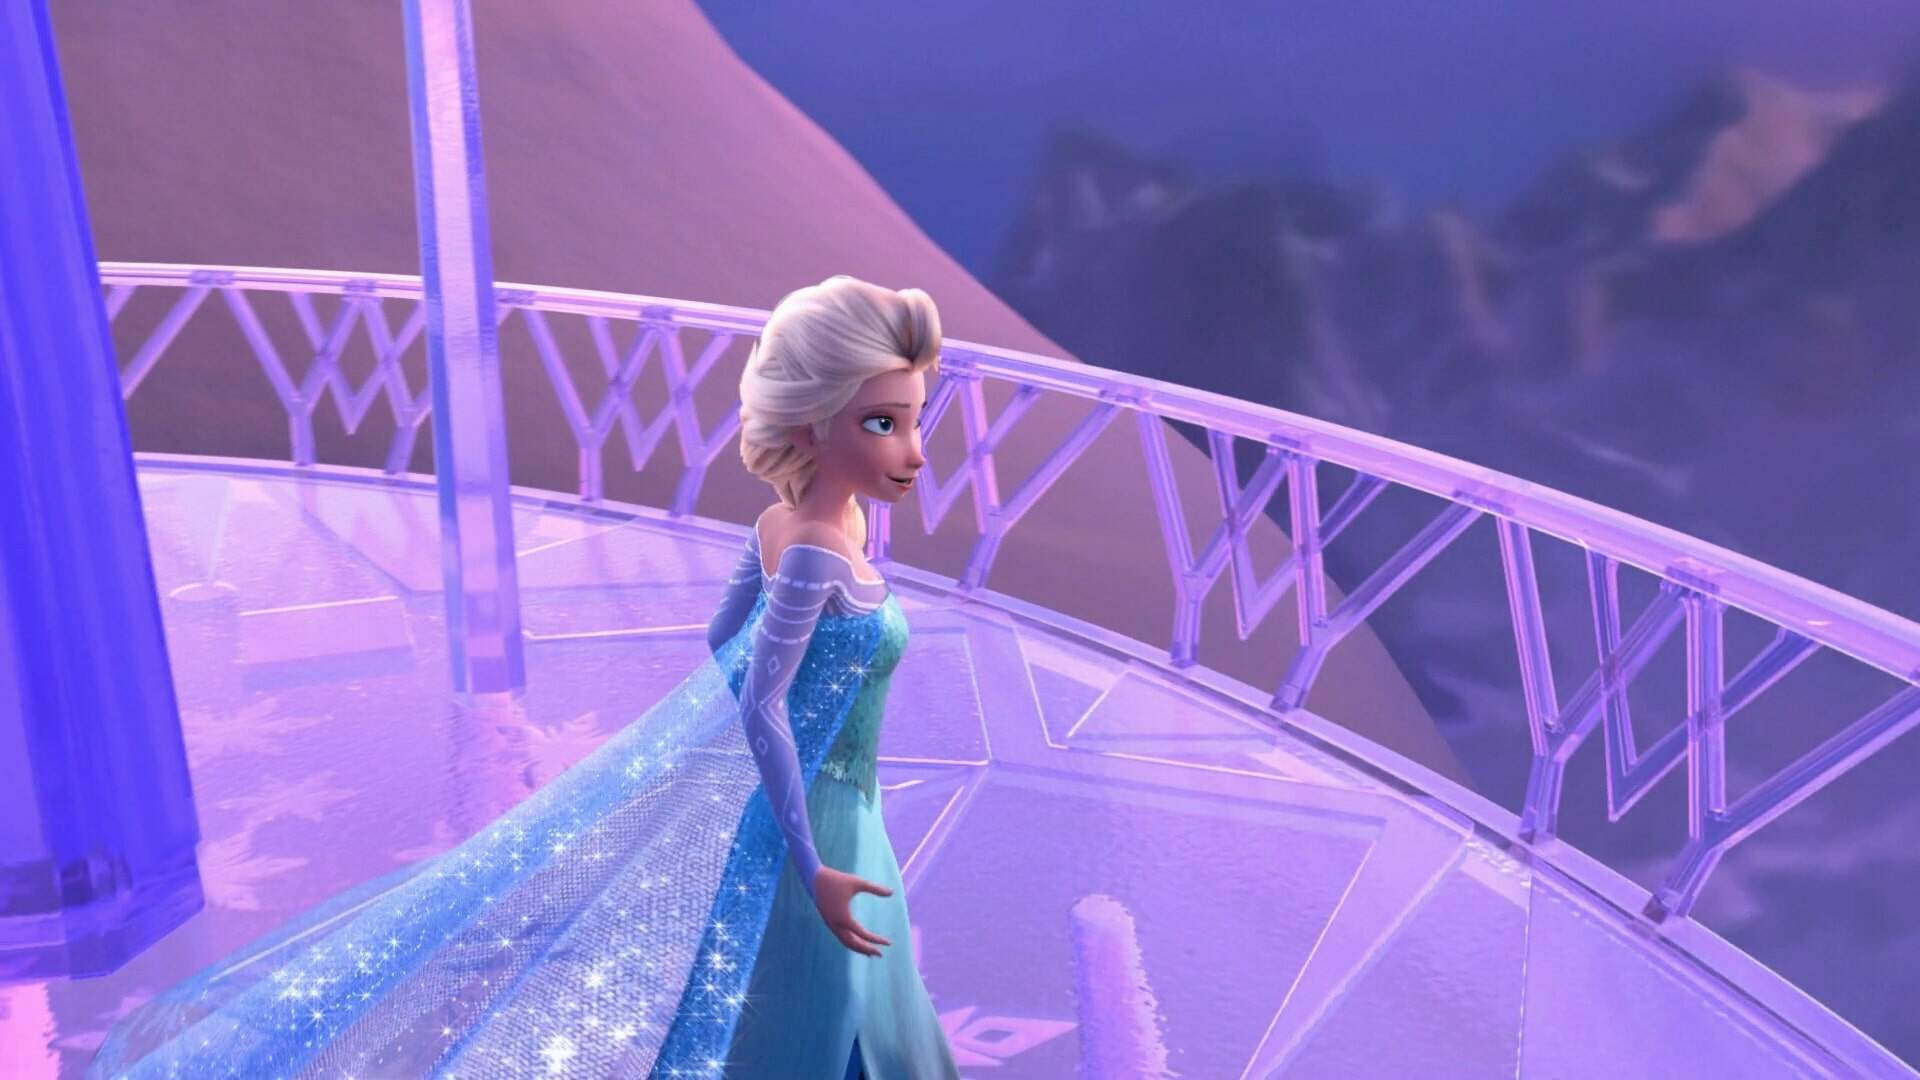 Kingdom Hearts 3 Arendelle Treasure Chests and Where to Find Olaf